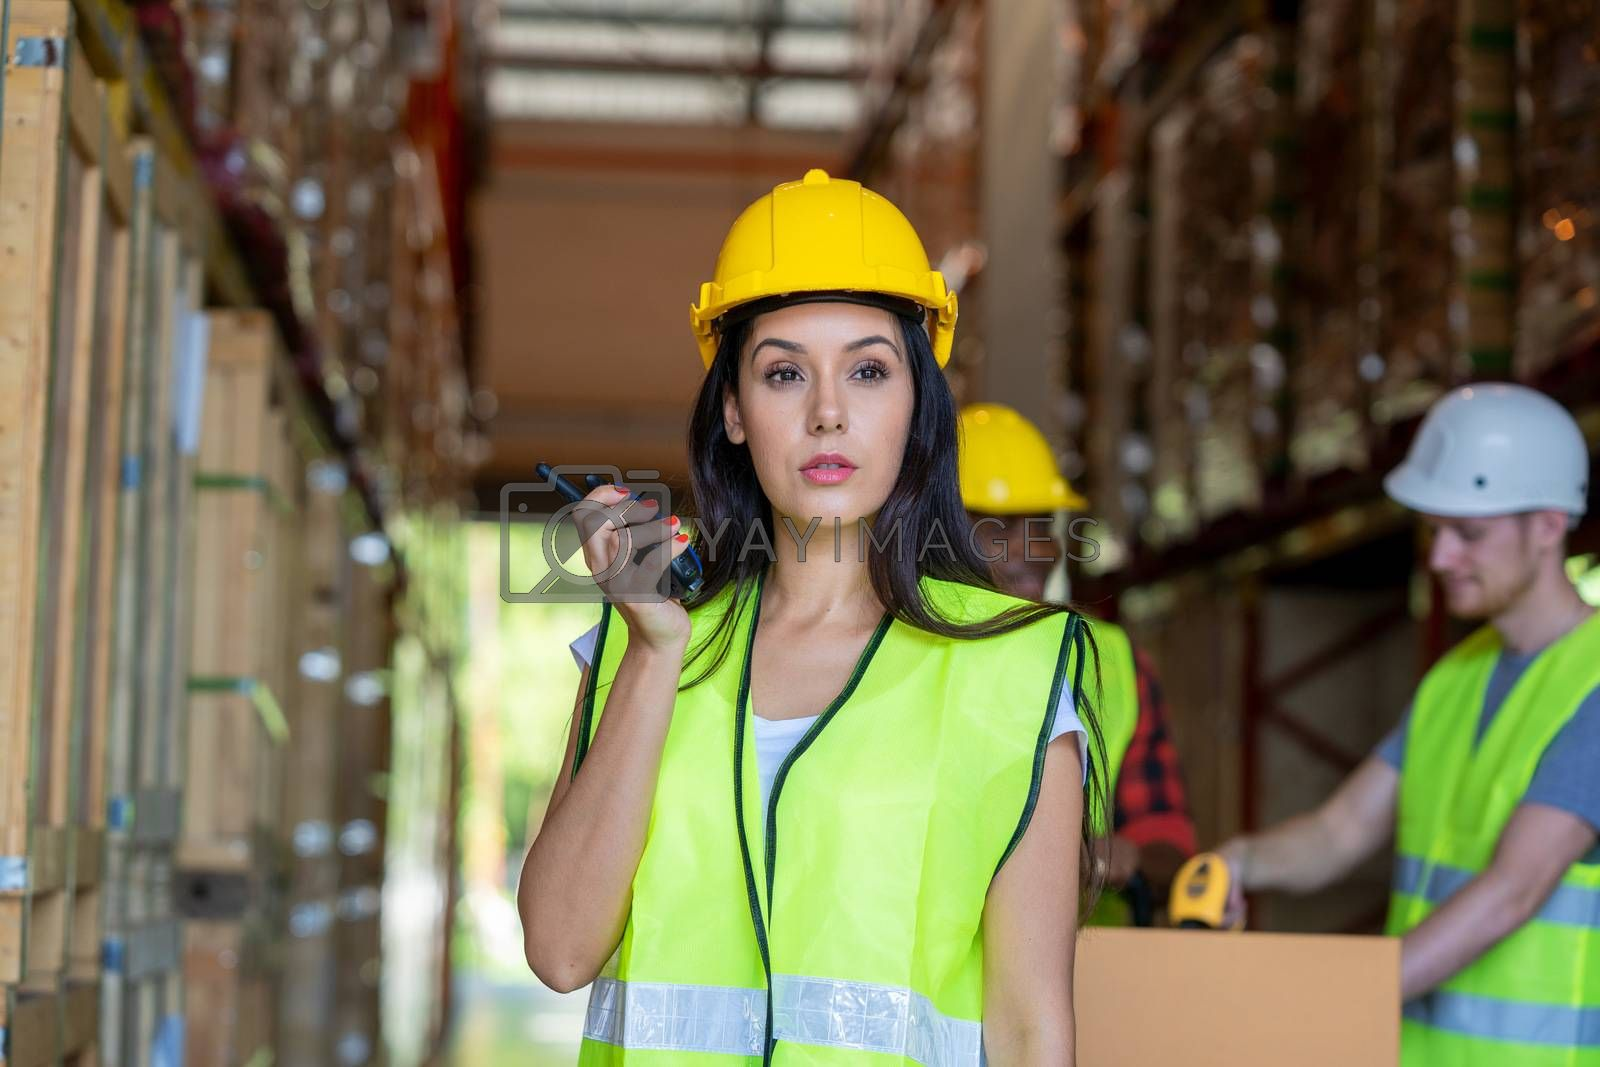 Warehouse worker using handheld radio receiver for communication by Visoot